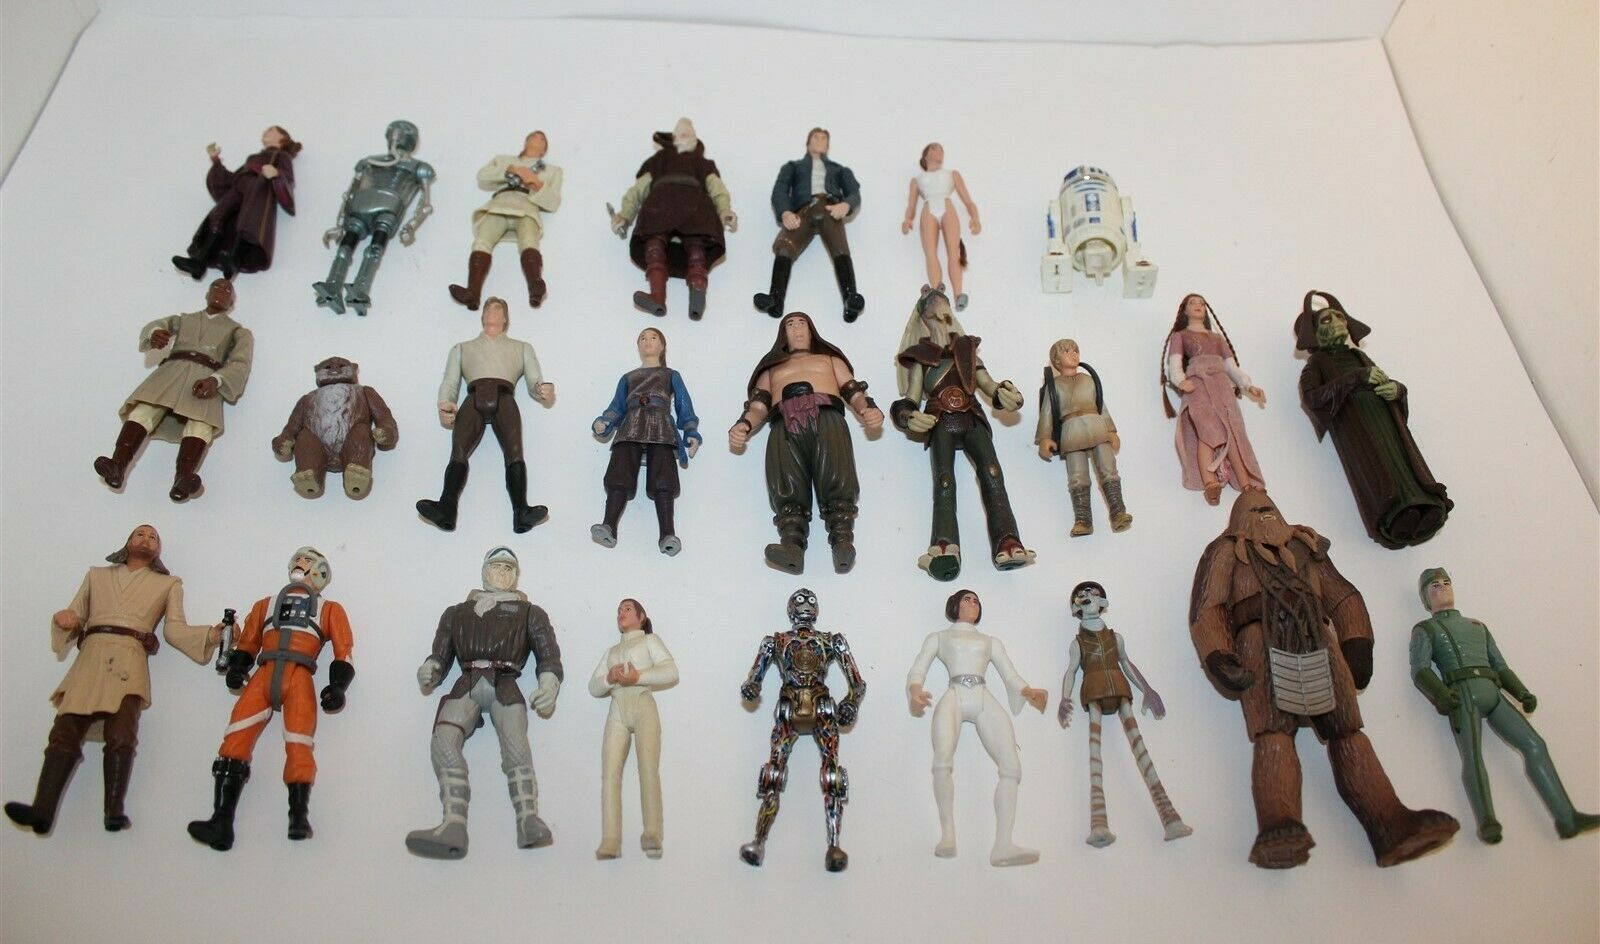 Star Wars Bulk Lot Of Action Figures 25 In Total